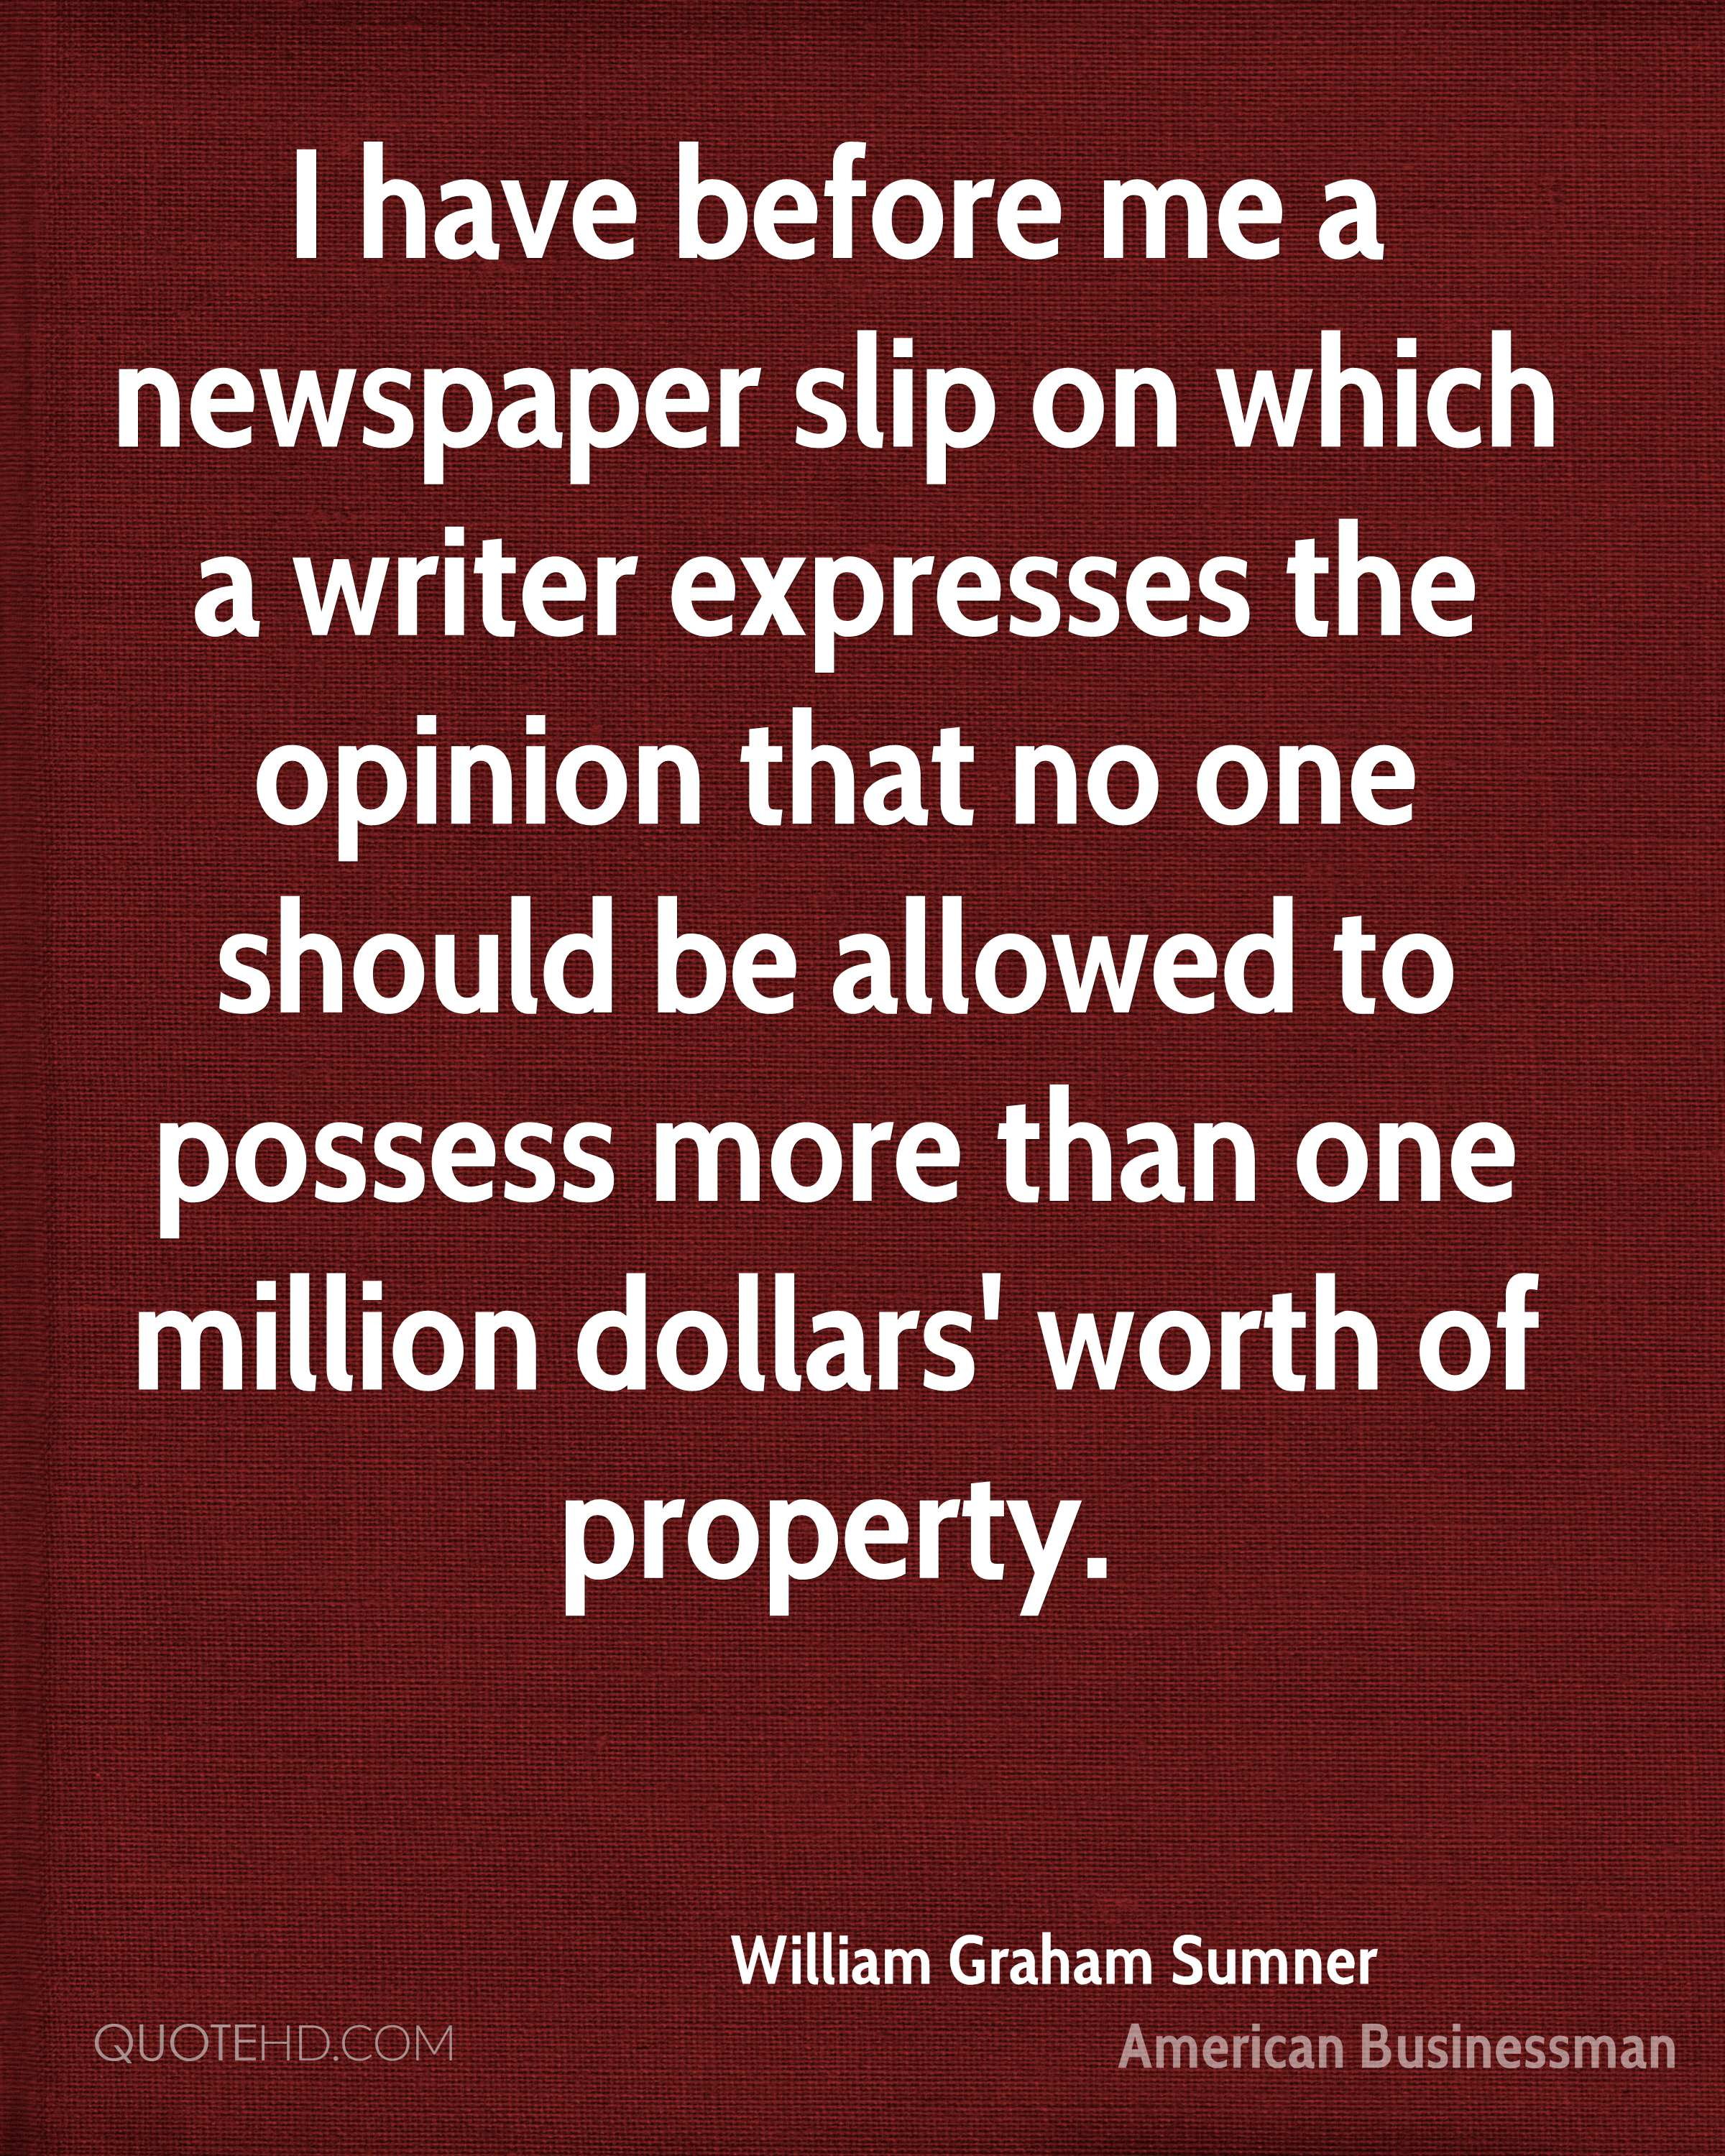 I have before me a newspaper slip on which a writer expresses the opinion that no one should be allowed to possess more than one million dollars' worth of property.